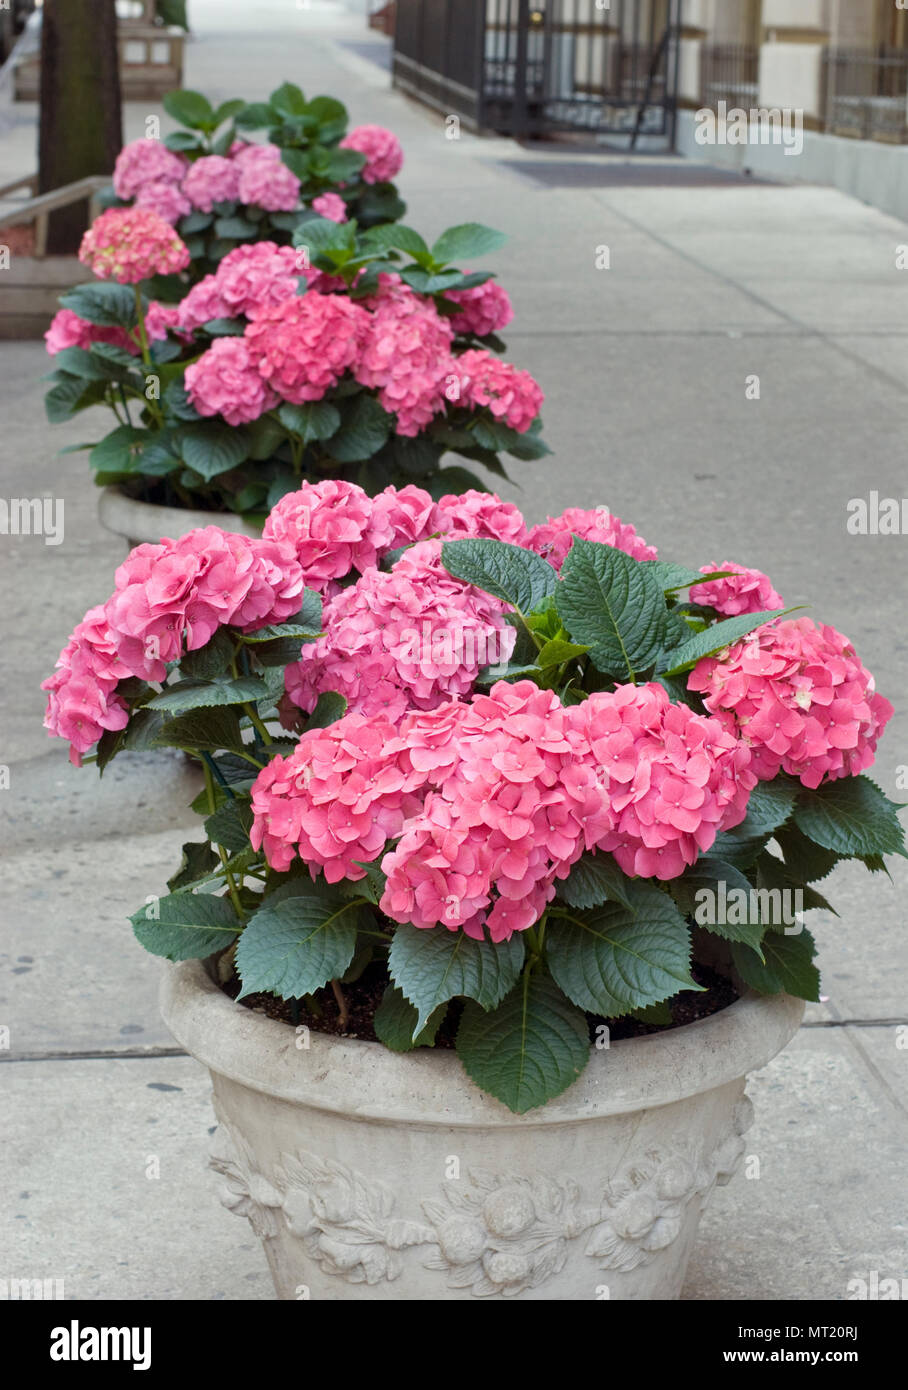 HYDRANGEAS IN SIDEWALK PLANTERS IN NEW YORK CITY - Stock Image